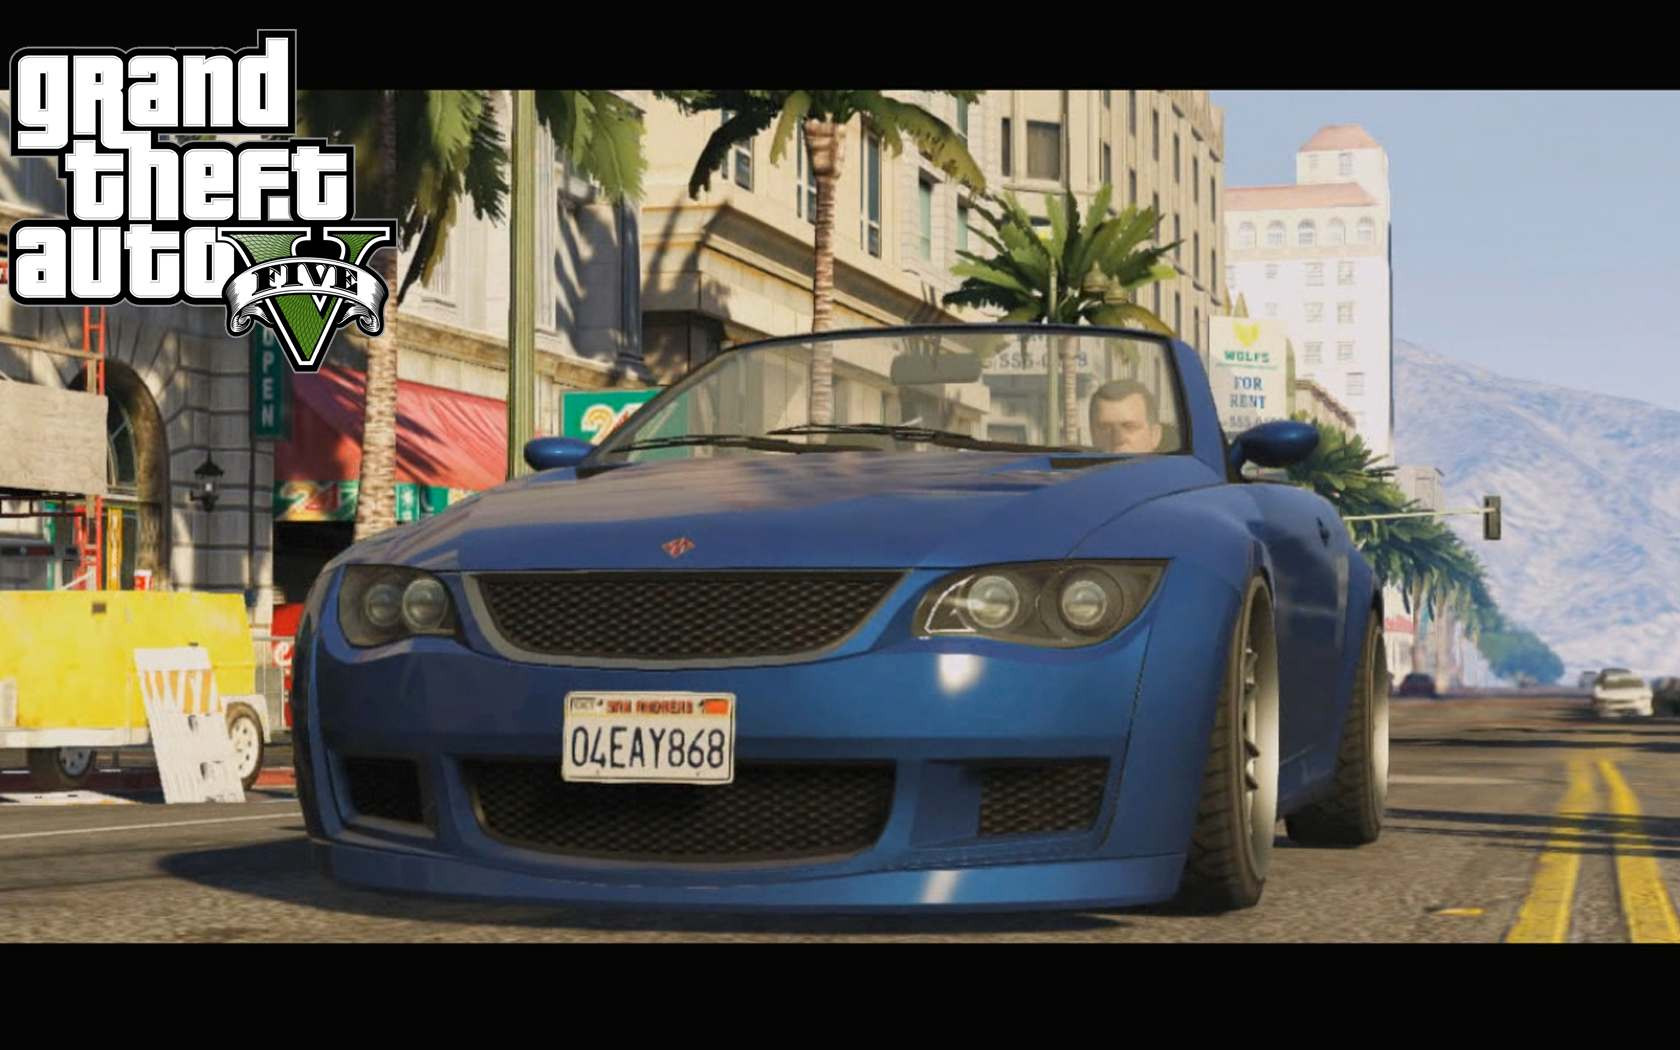 GTA-5-car-wallpaper